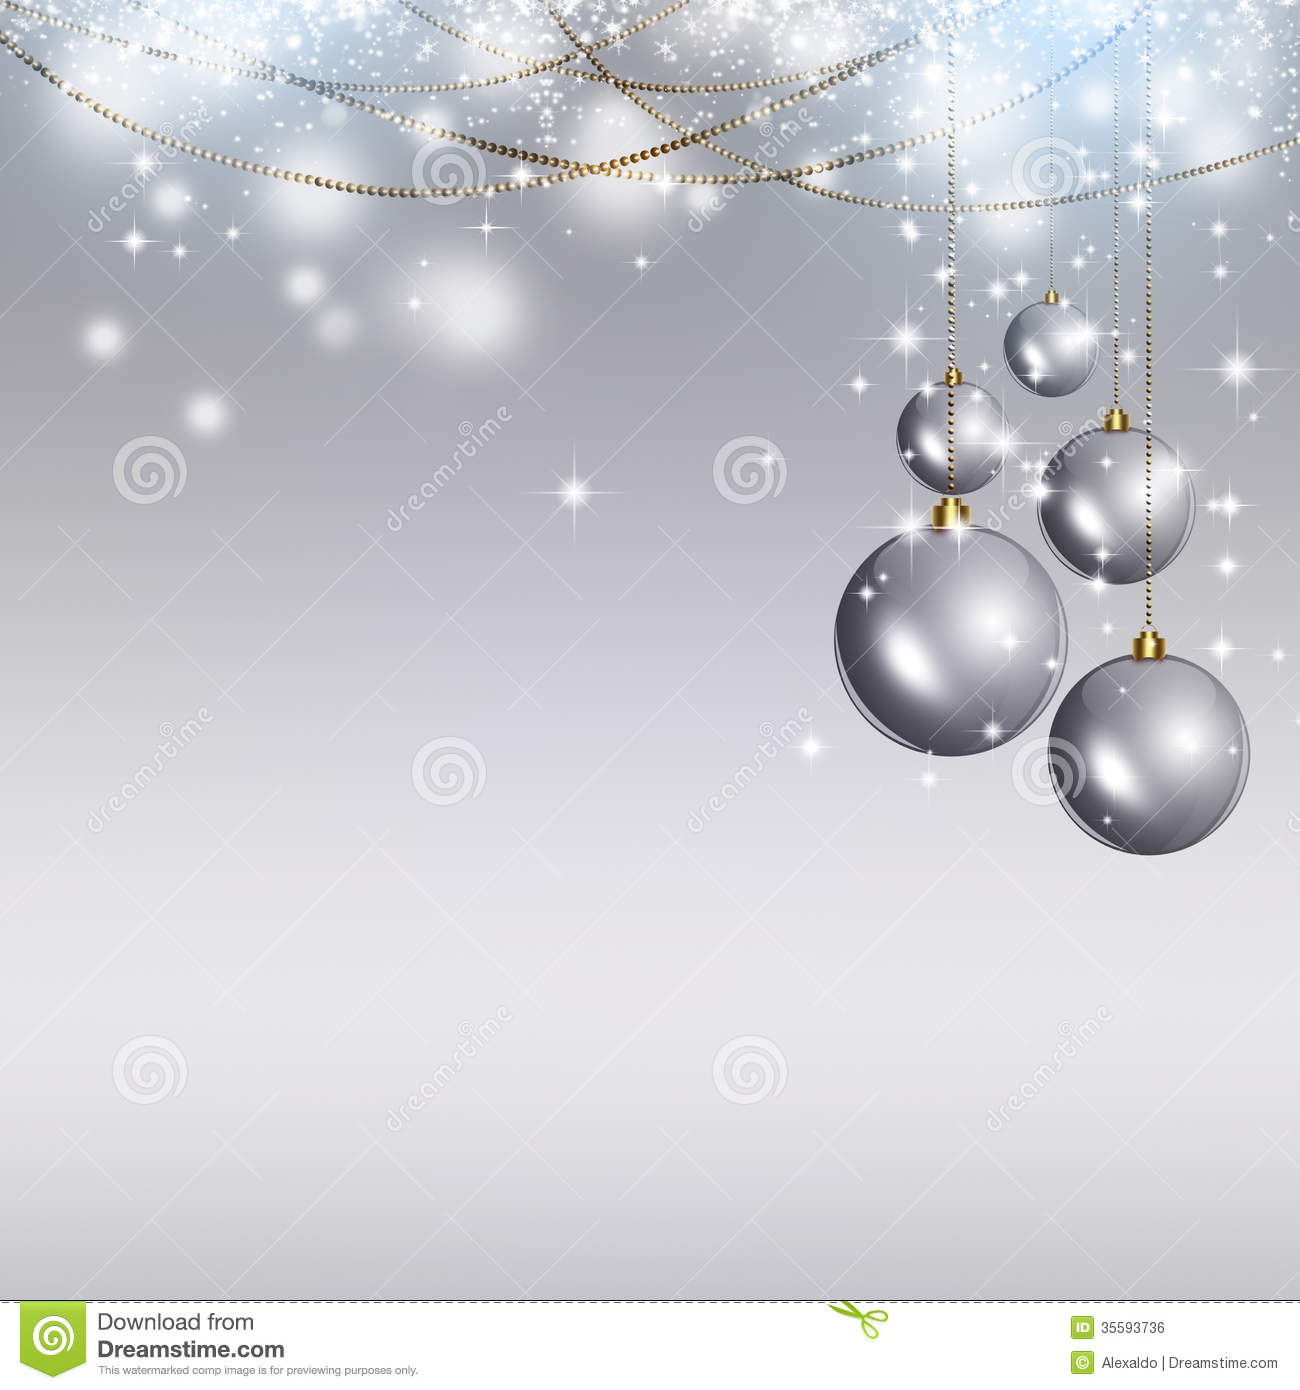 winter holiday party backgrounds